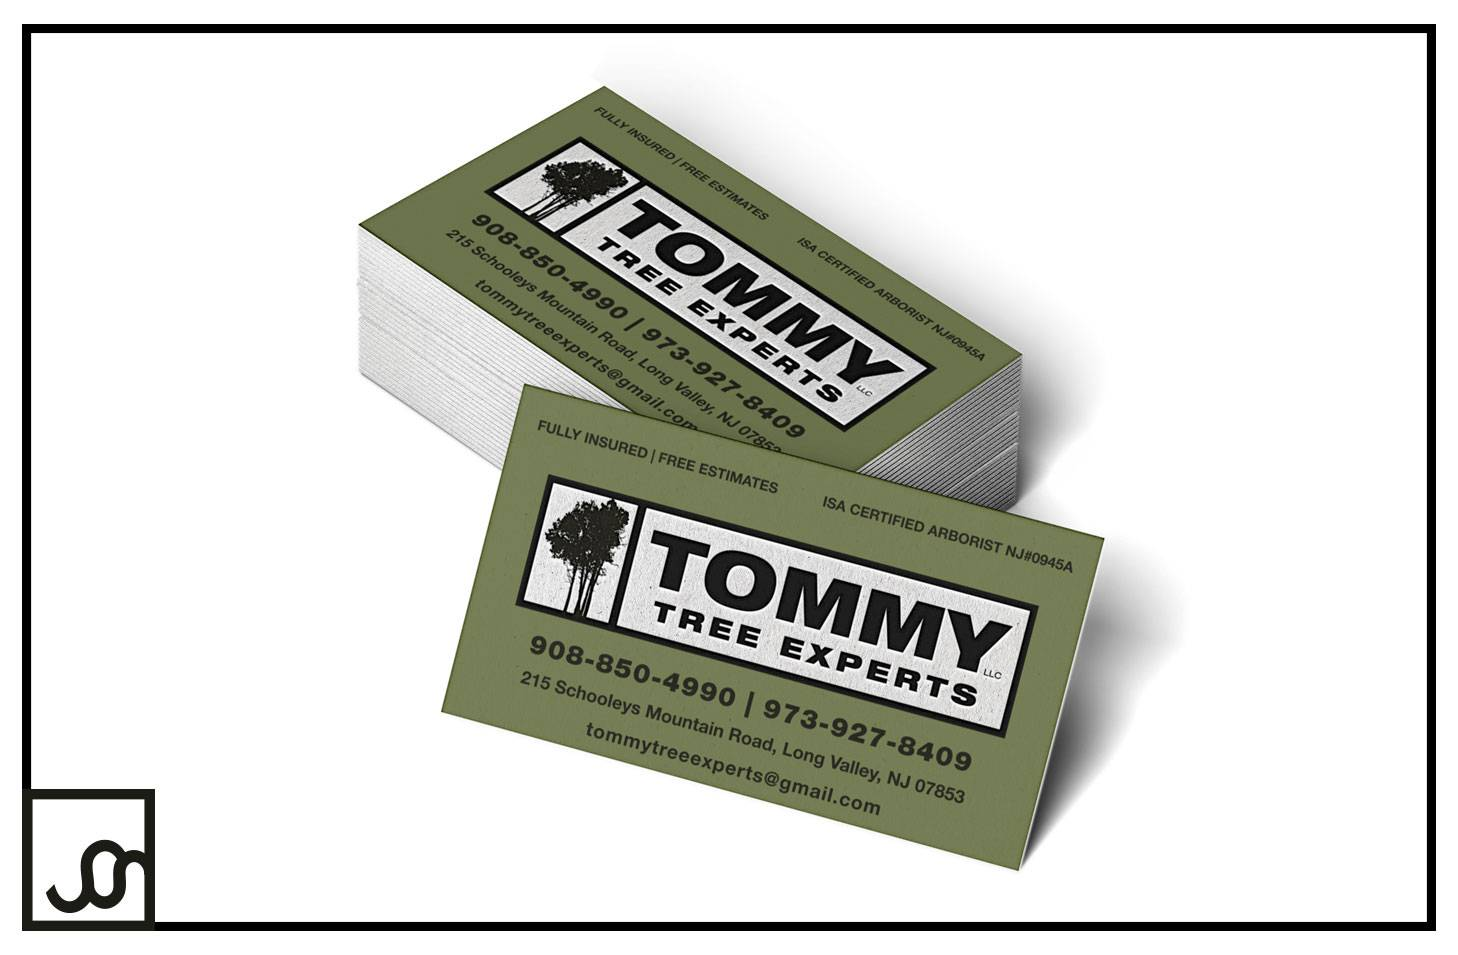 Tommy Tree Experts Business Cards